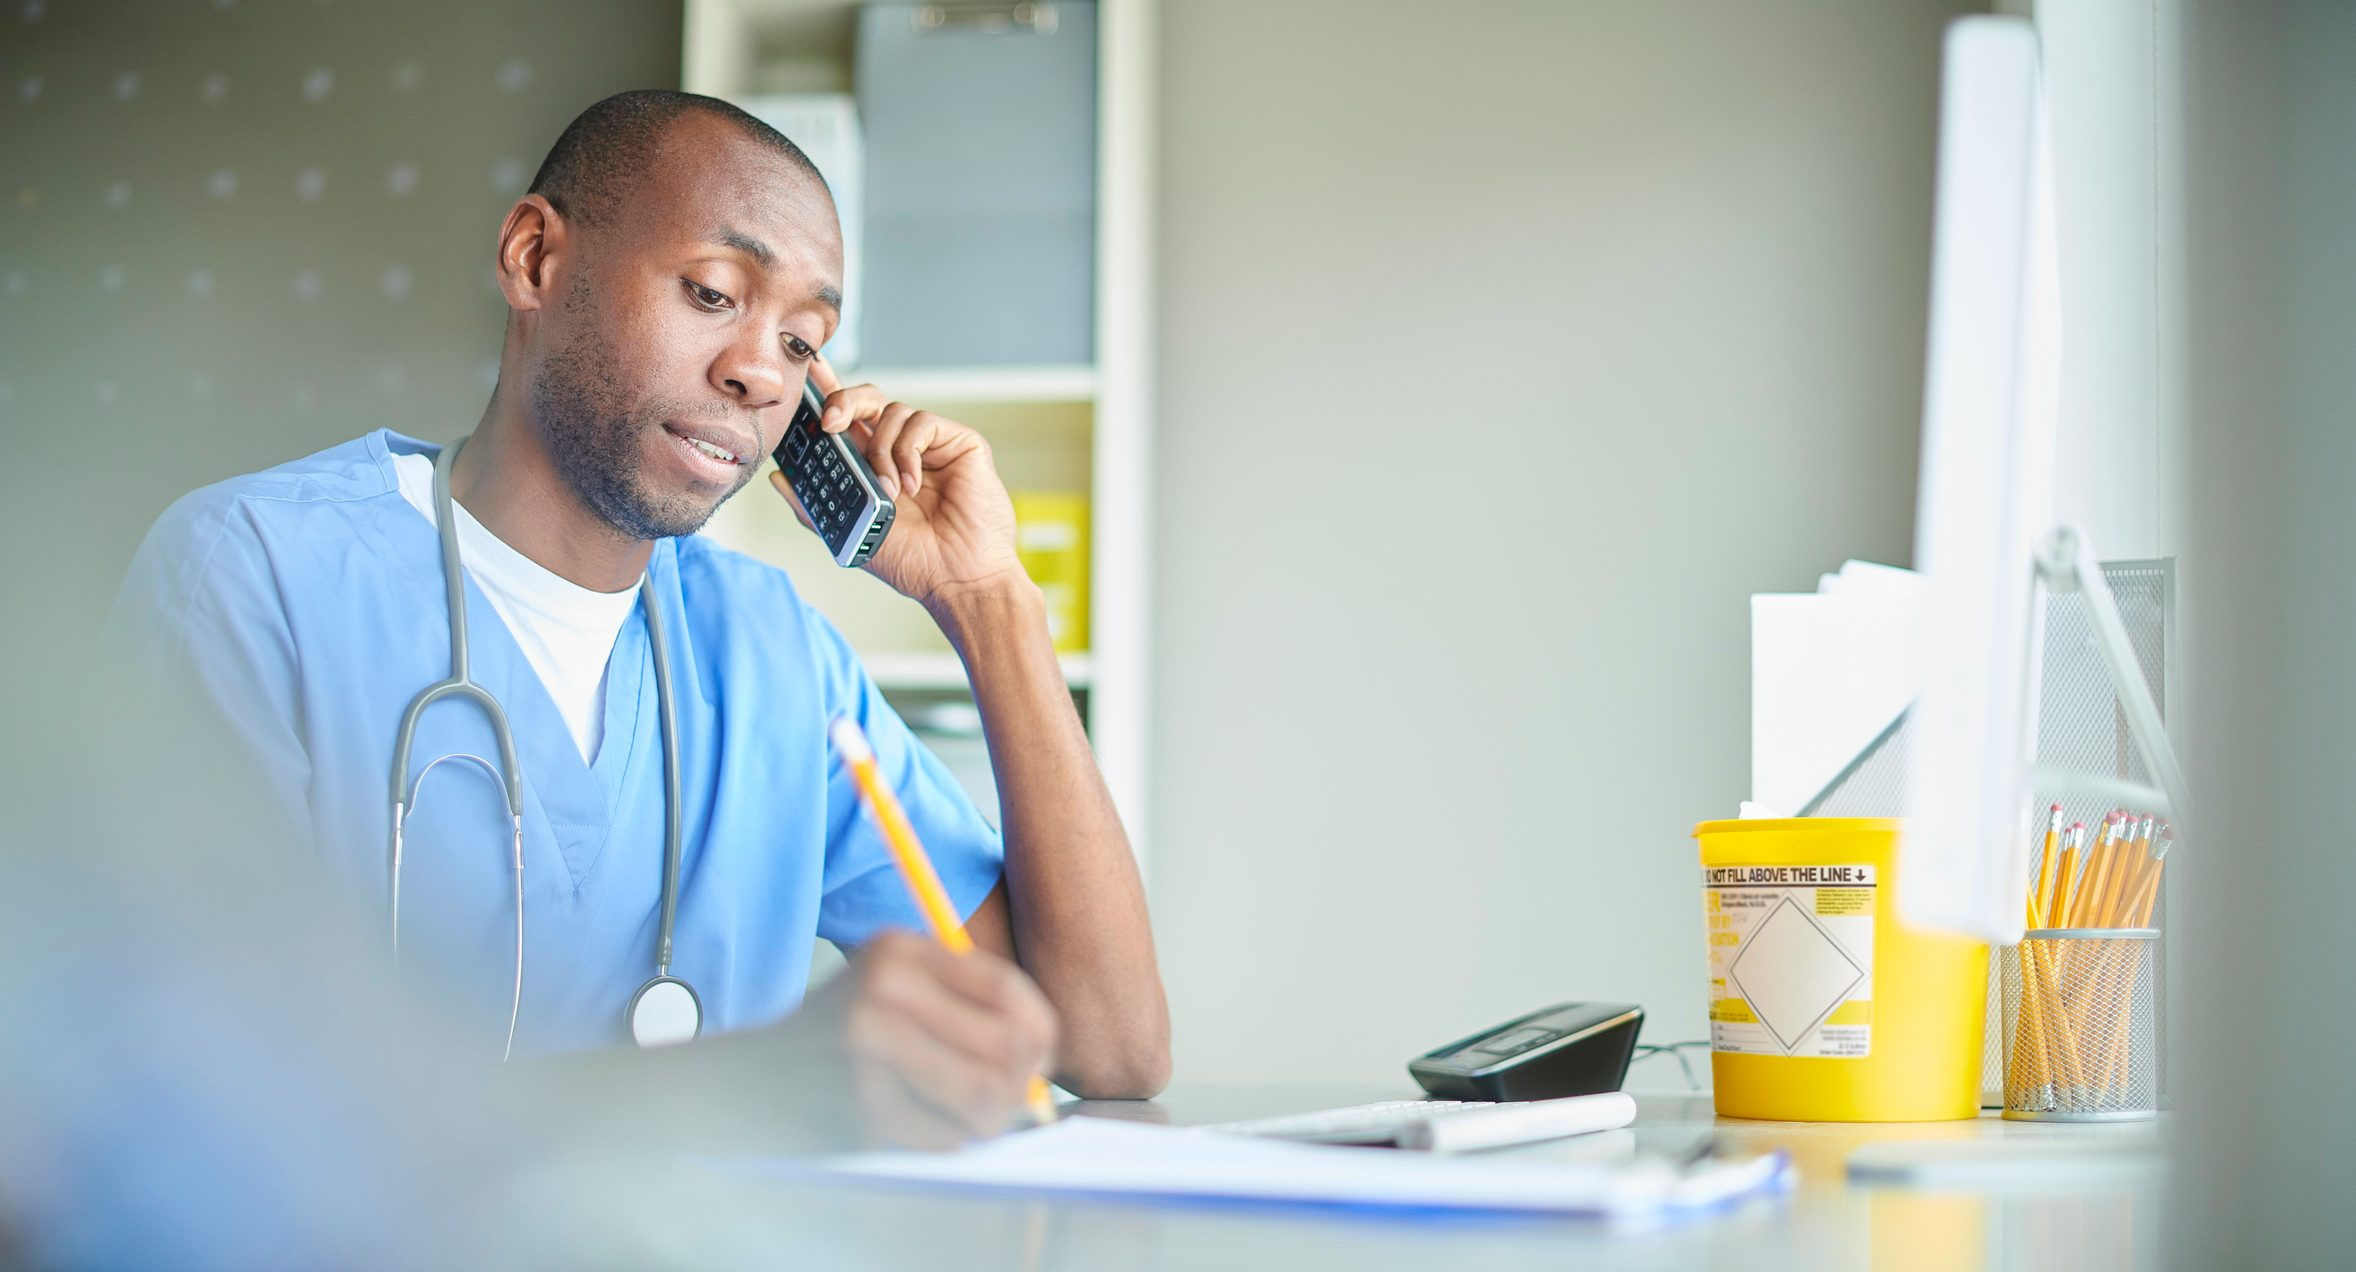 male doctor on the phone with patient